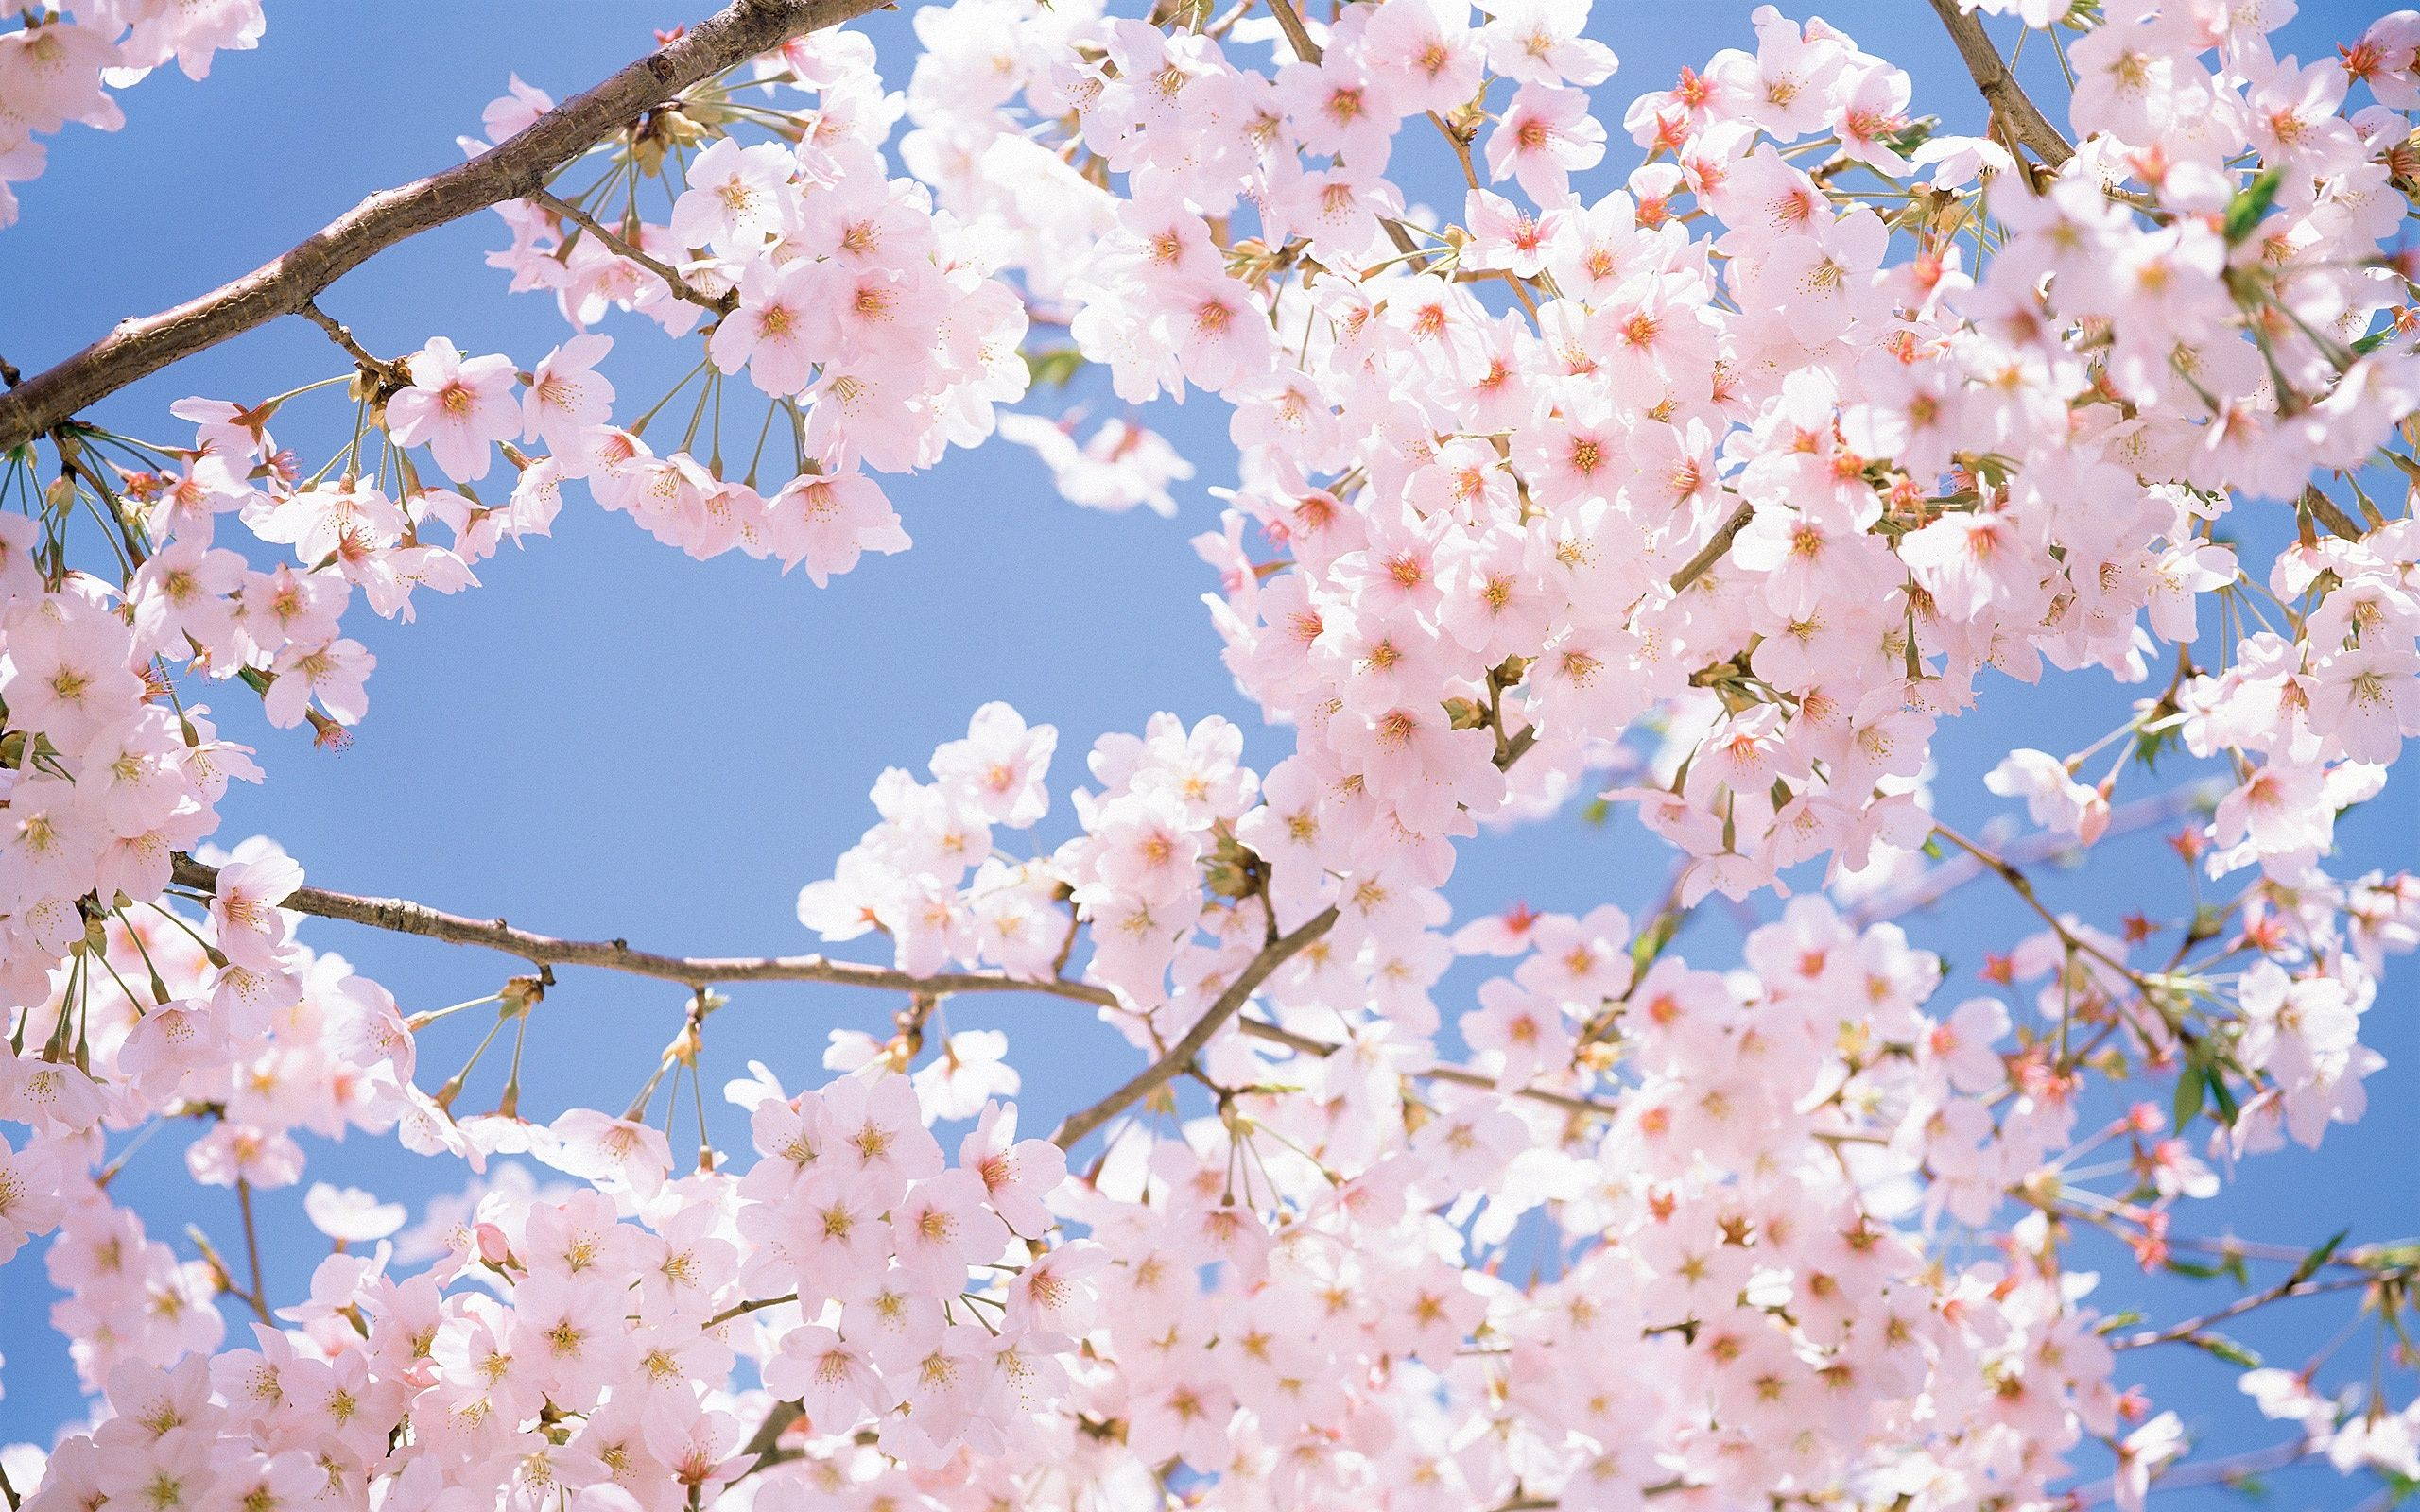 Cherry Blossom Tree Wallpapers Pictures Cherry Blossom Wallpaper Cherry Blossom Tree Japanese Cherry Blossom